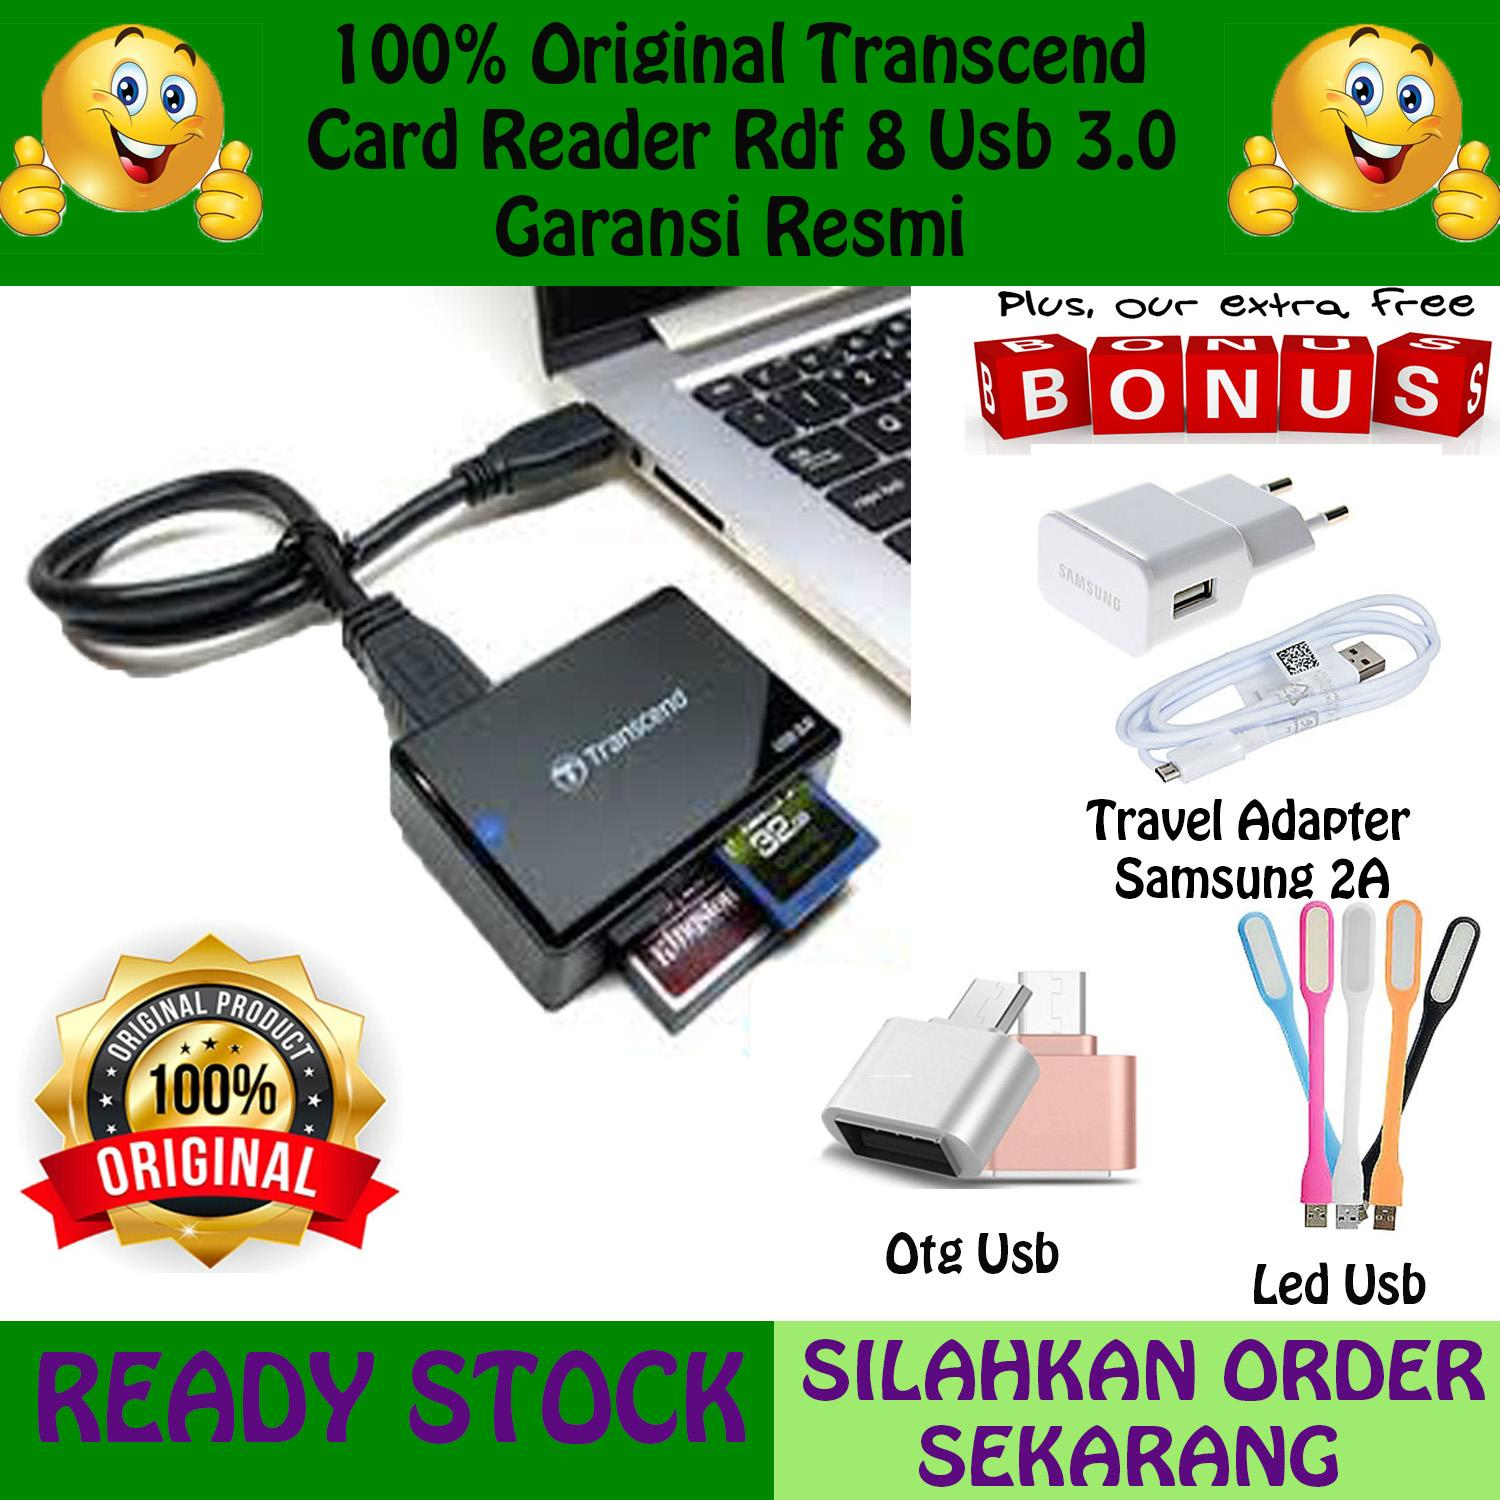 Buy Sell Cheapest Transcend Card Reader Best Quality Product Deals Rdf8 Usb 30 Black 100 Original Rdf 8 Gratis 3 Item Langsung Travel